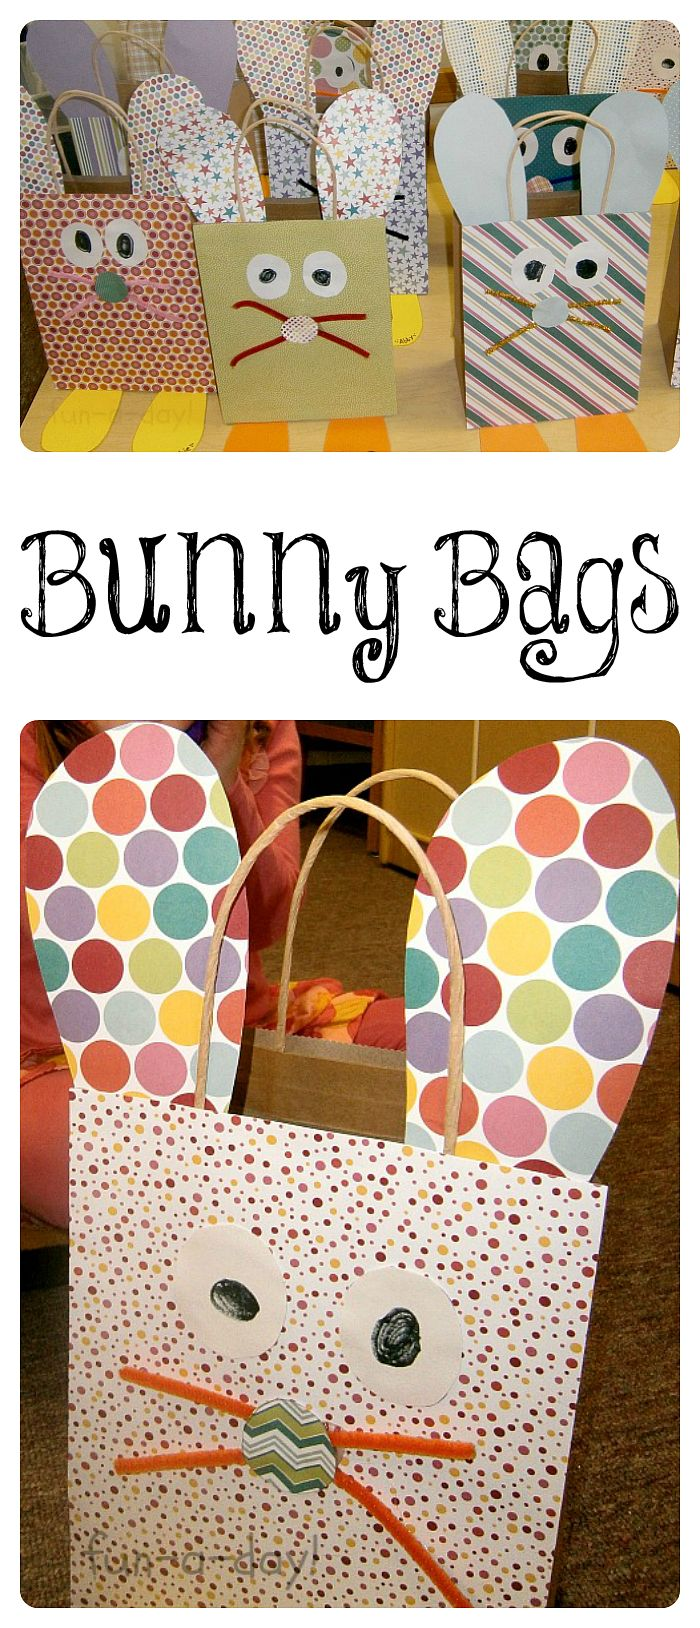 192 best preschool easter crafts images on pinterest activities bunny bags are a colorful easter craft for kids to make before an easter egg hunt negle Image collections